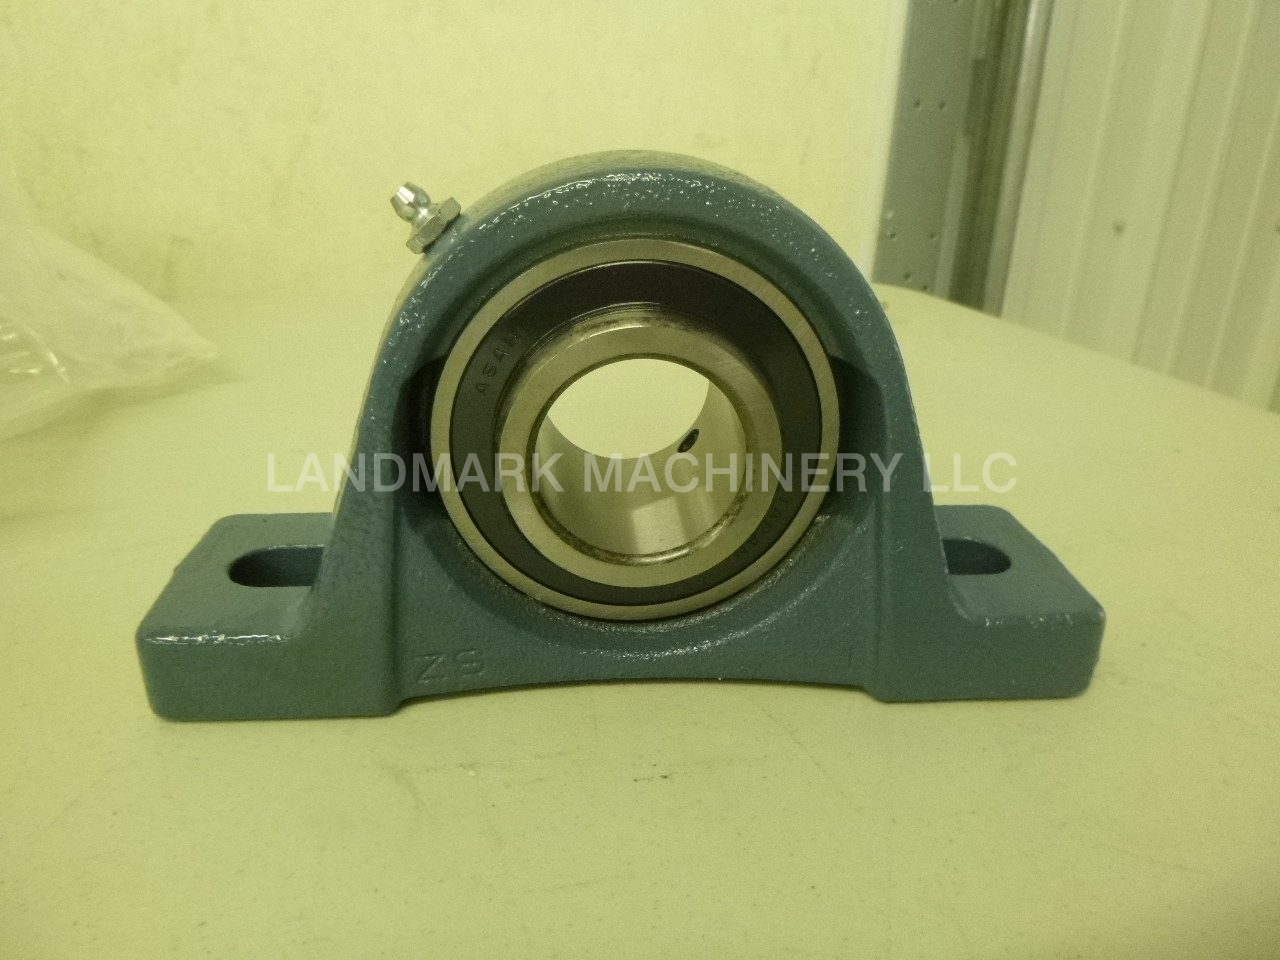 Bearing Machine Bearings Pb 1 1 2